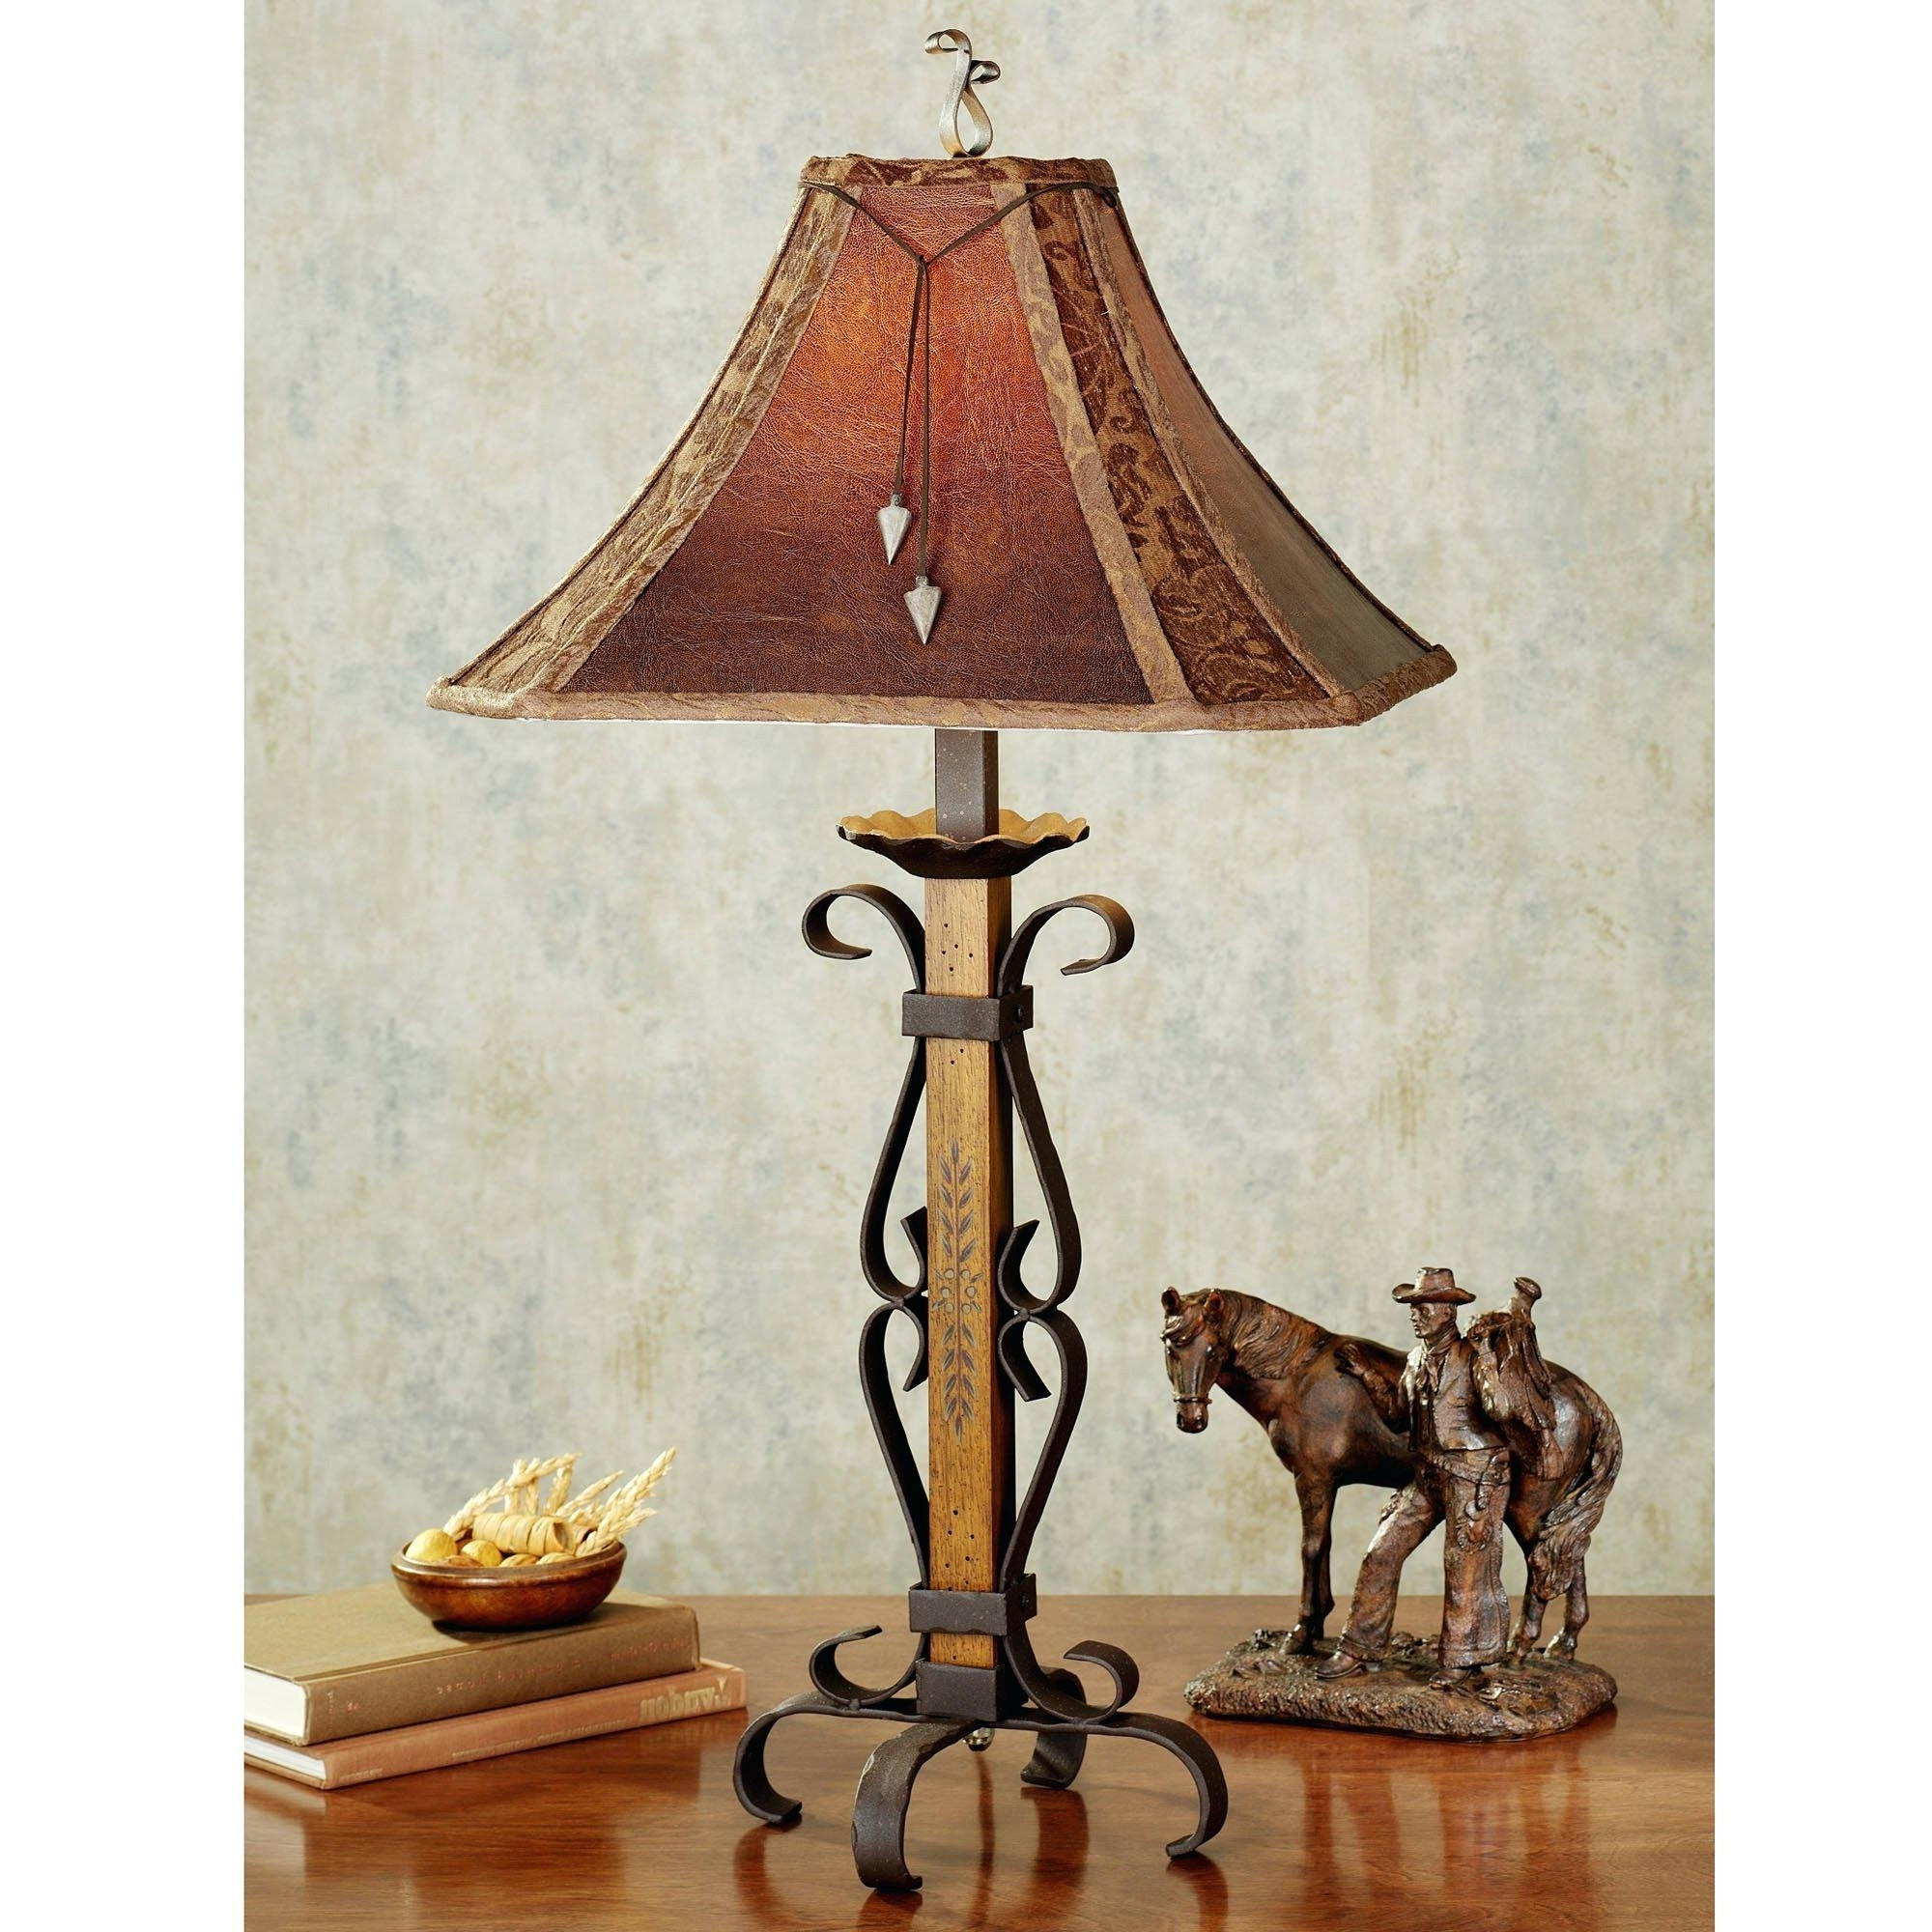 Top 68 Skookum Tuscan Style Table Lamps Old World Vintage For Living Intended For Latest Tuscan Table Lamps For Living Room (View 13 of 20)